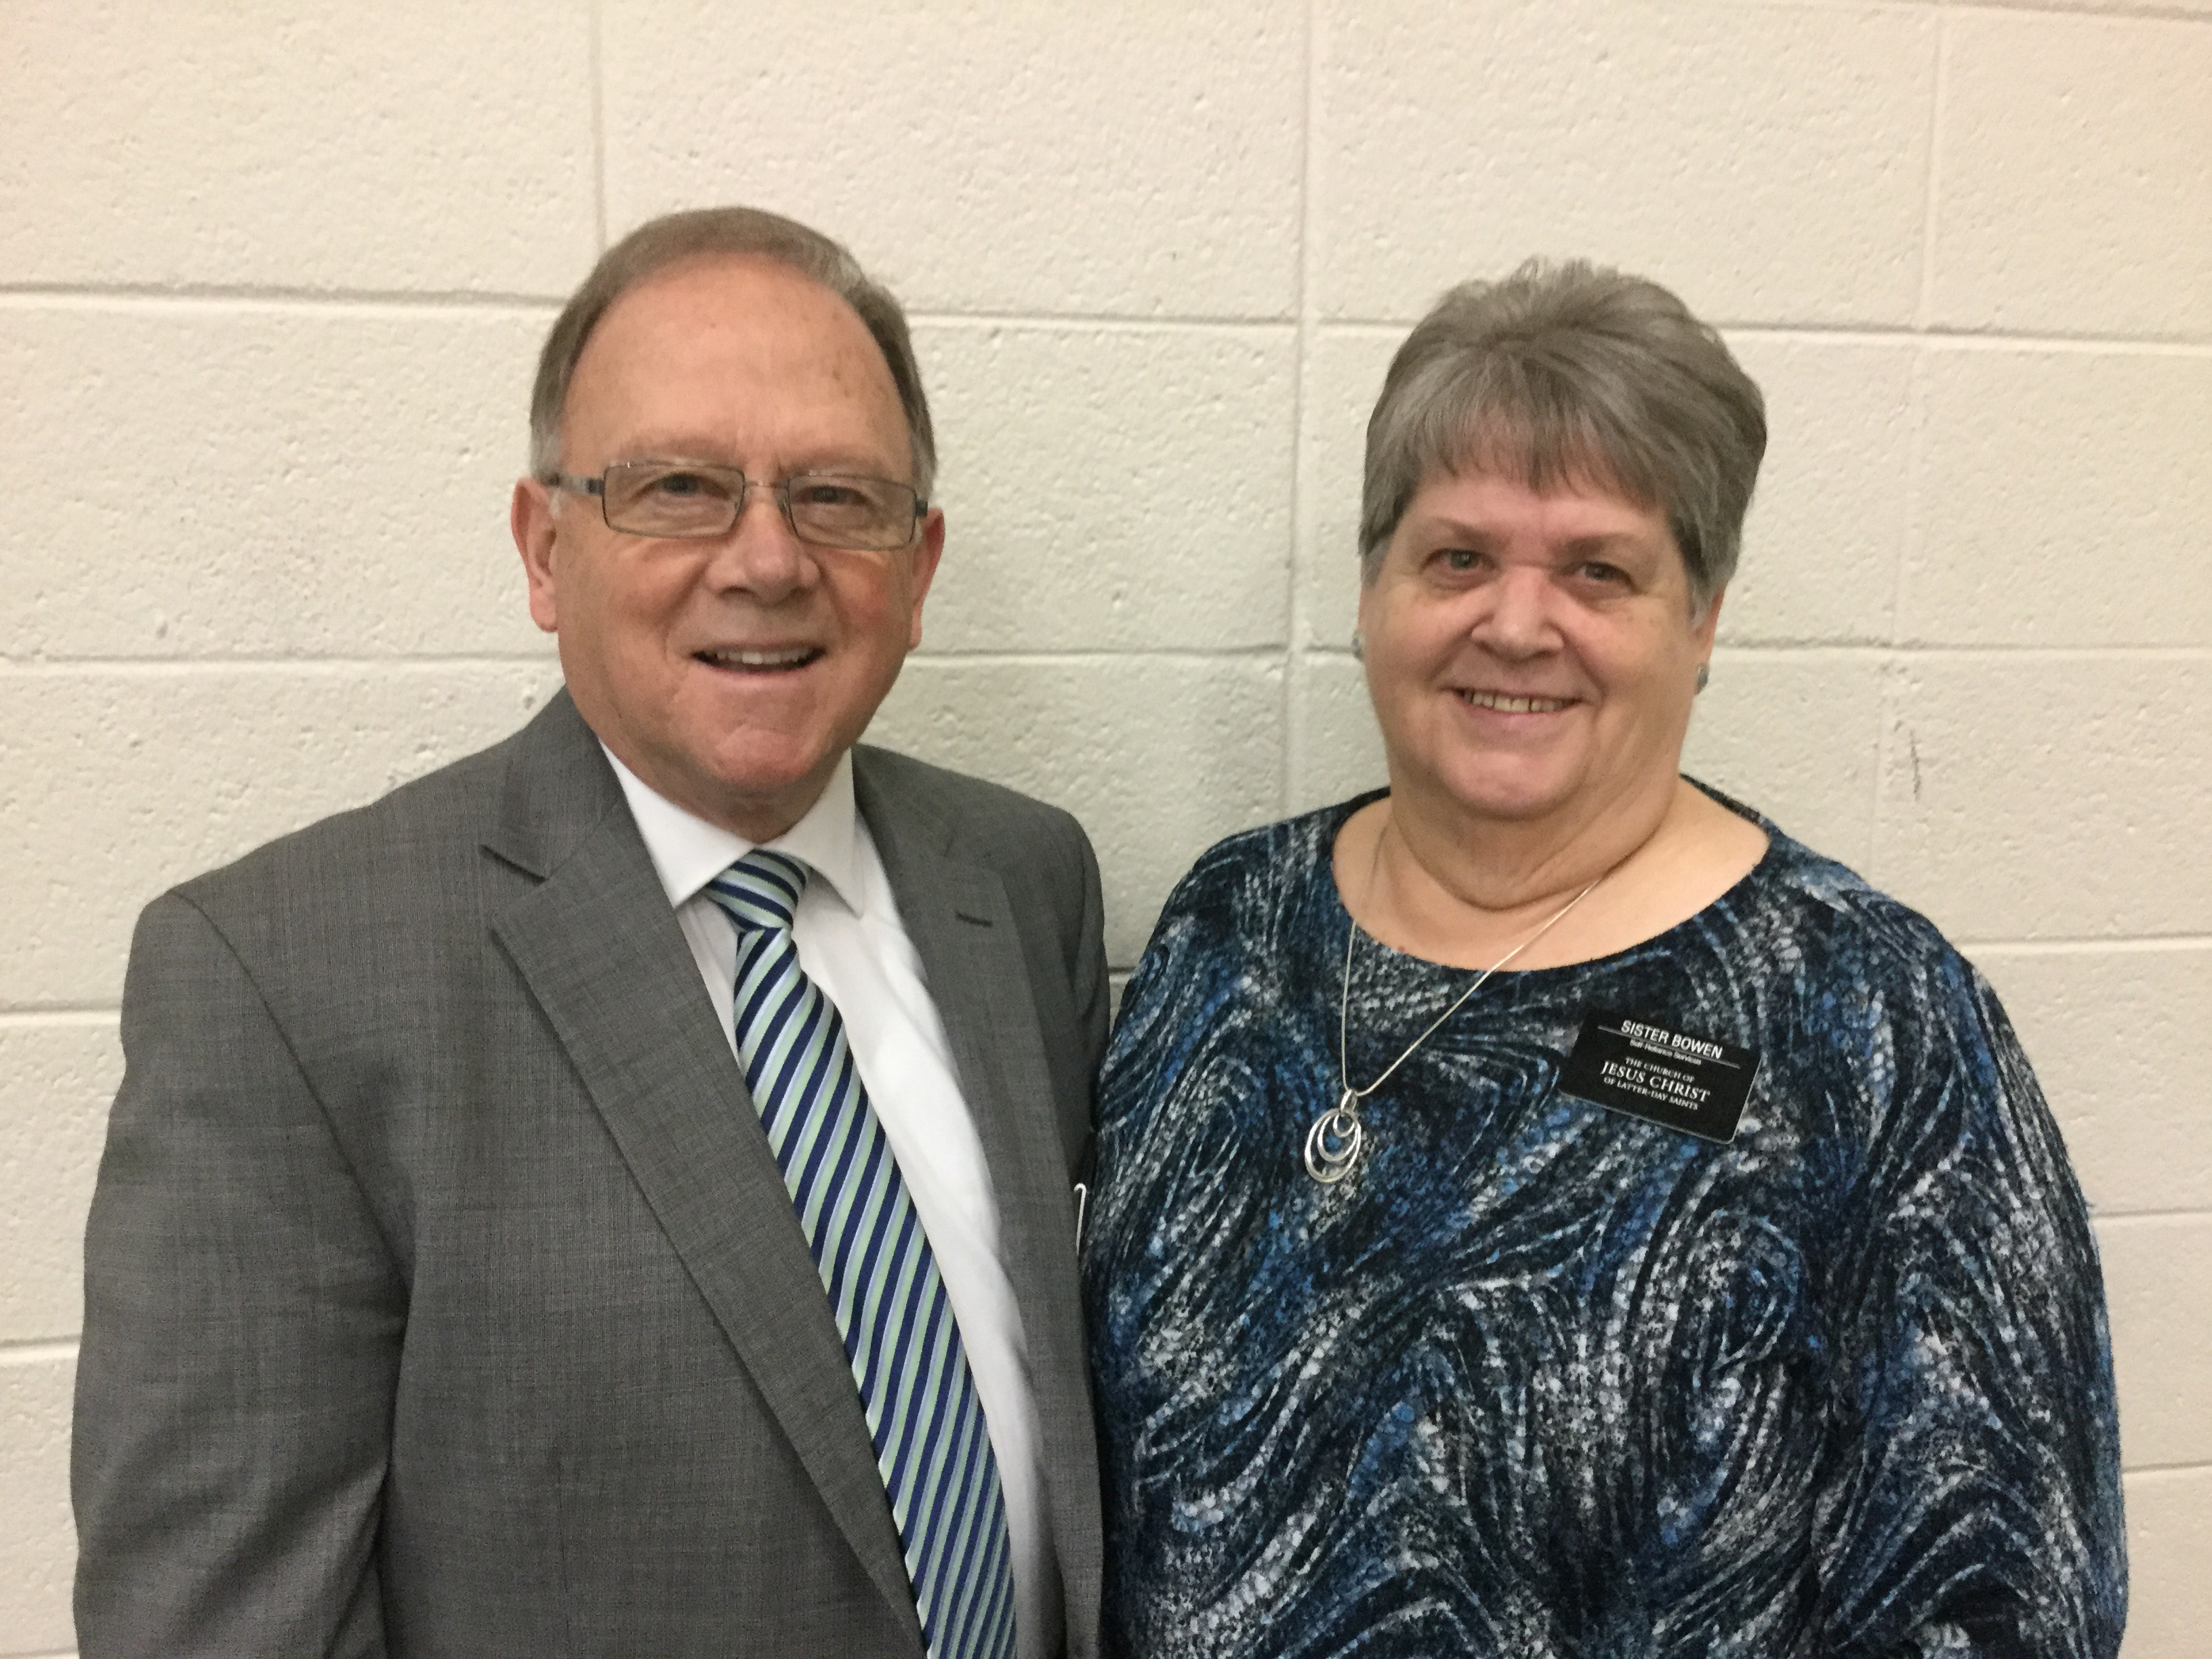 Elder Bruce Bowen and Sister Valerie Bowen are serving as self-reliance missionaries in the Tennessee Knoxville Mission.